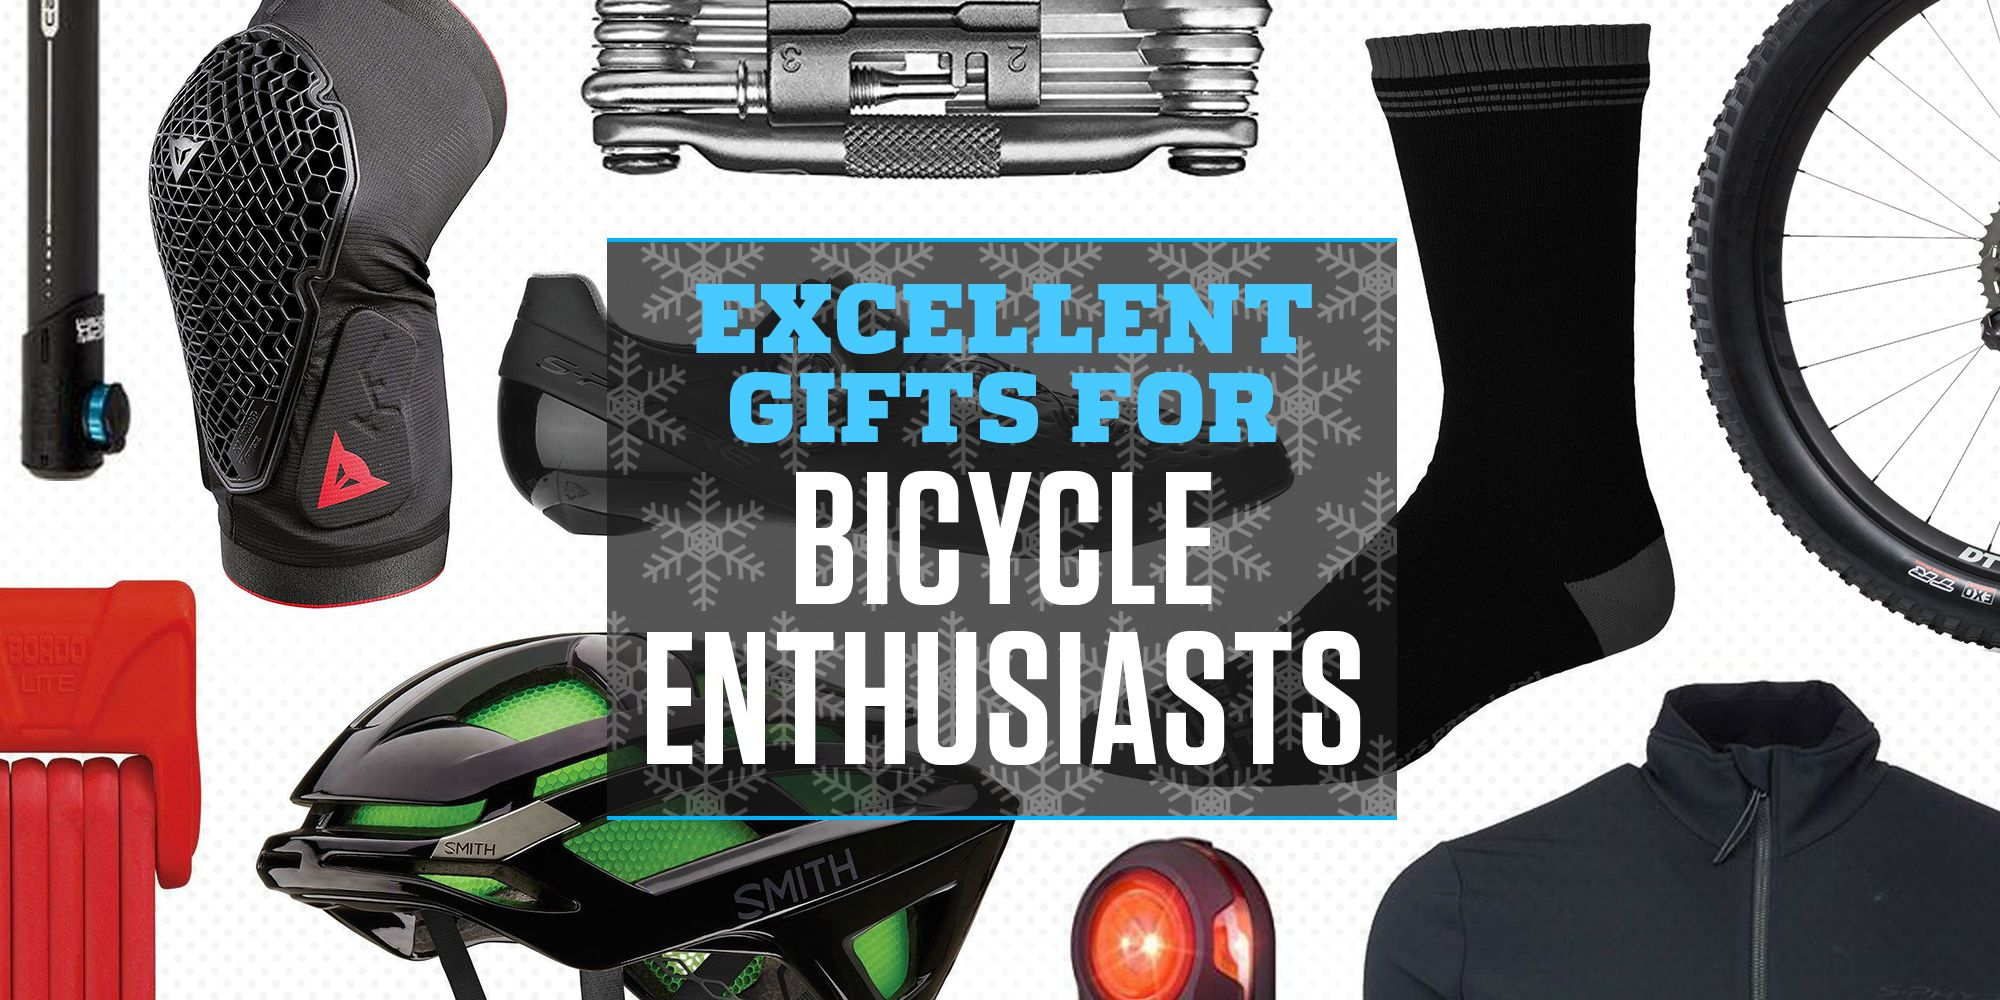 21 Excellent Gifts for Bicycle Enthusiasts